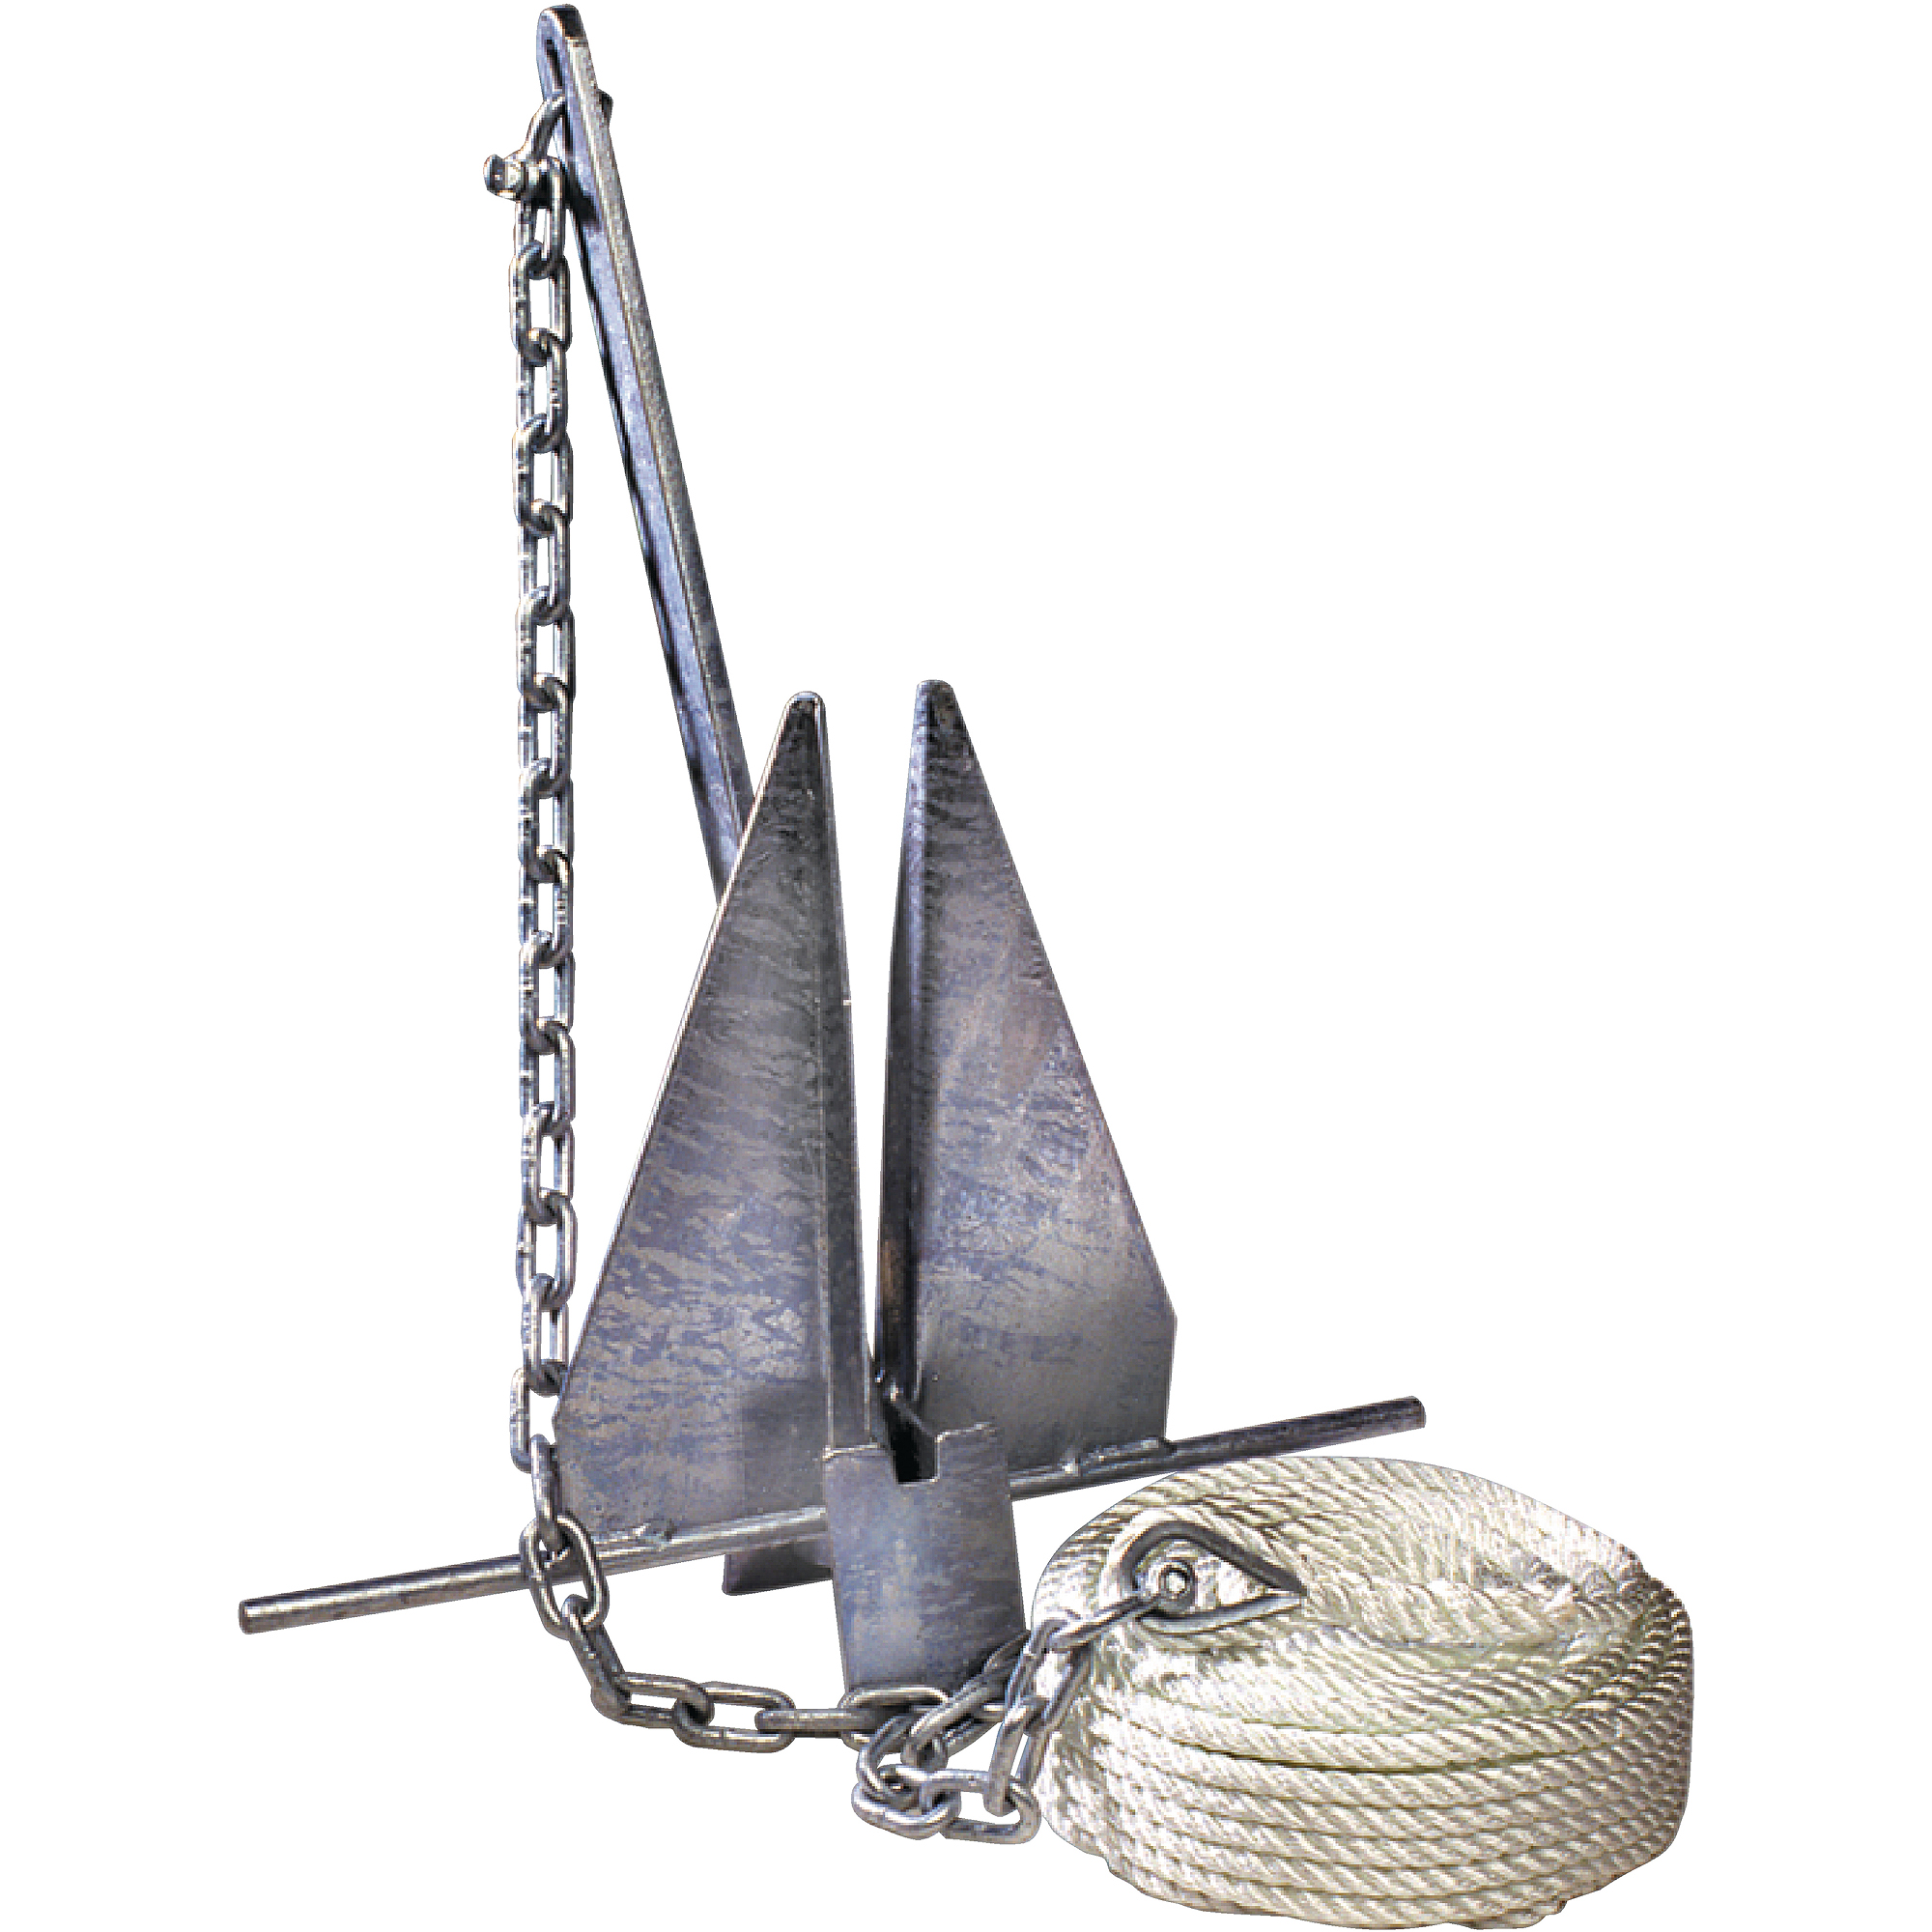 Tie Down Engineering Super Hooker Anchor Kit Includes Anchor, Anchor Line, Anchor Chain and 2 Shackles